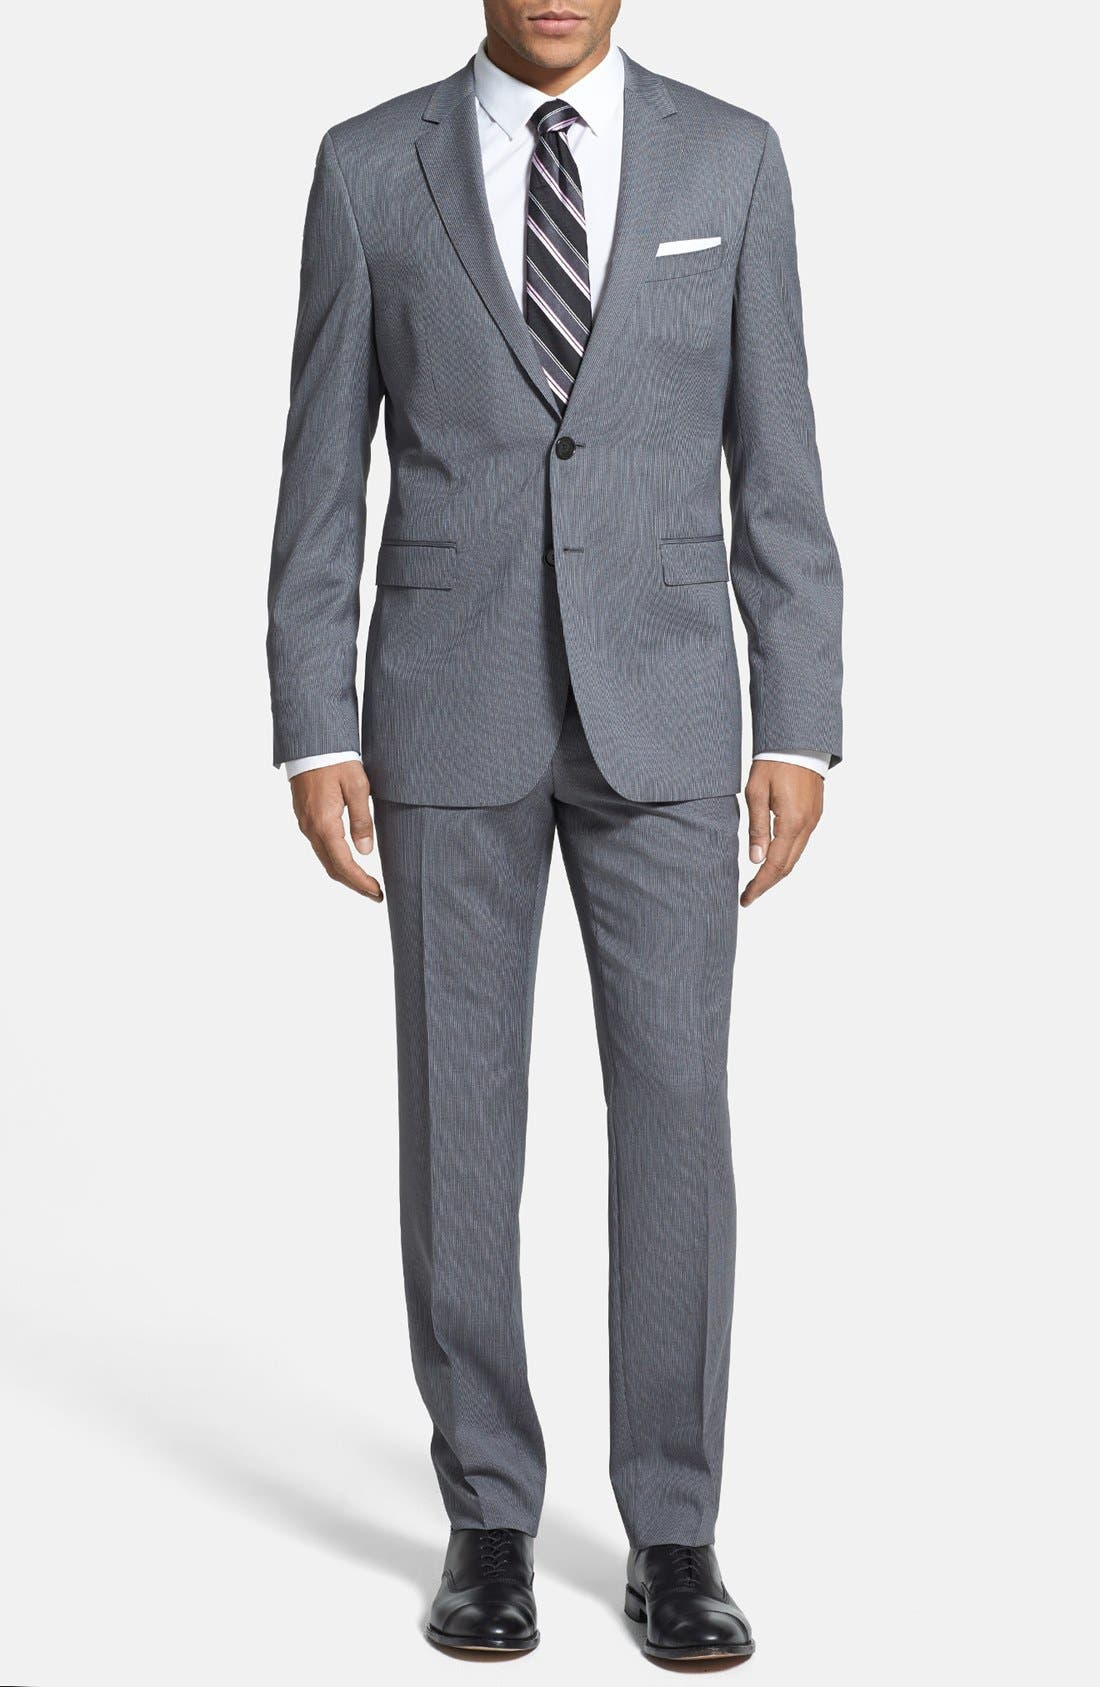 ZZDNUHUGO BOSS BOSS HUGO BOSS 'Ryan/Win' Extra Trim Fit Stripe Suit, Main, color, 030